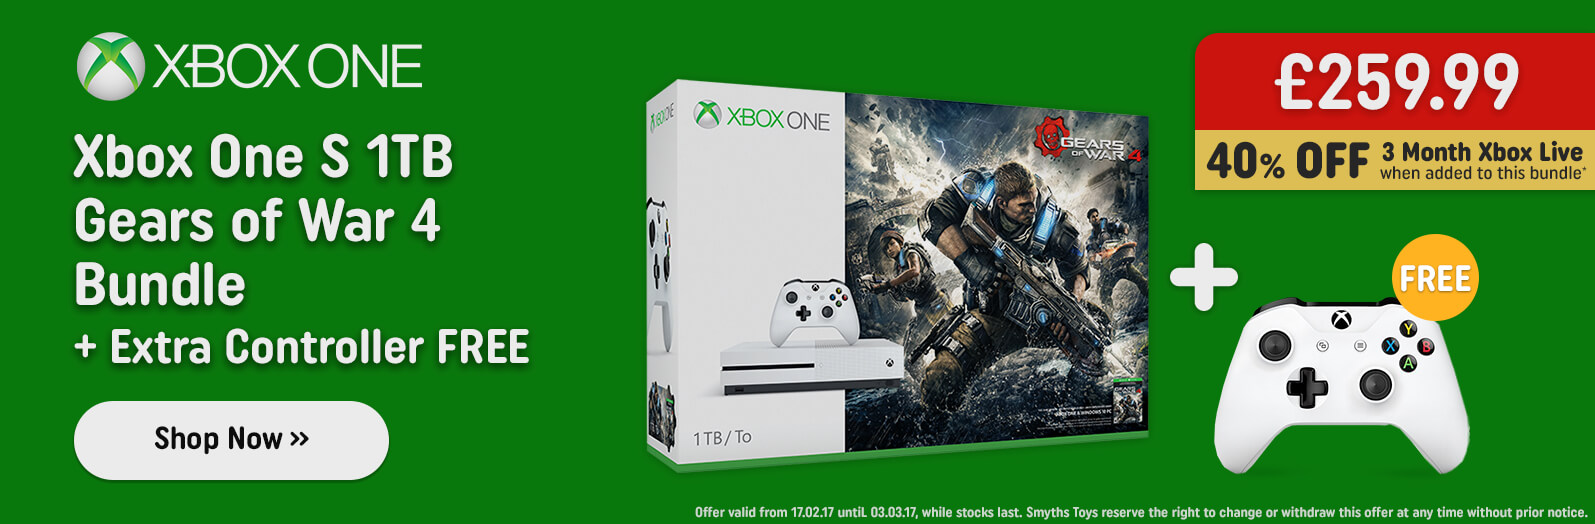 Xbox One Gears of War Bundle with Extra Controller